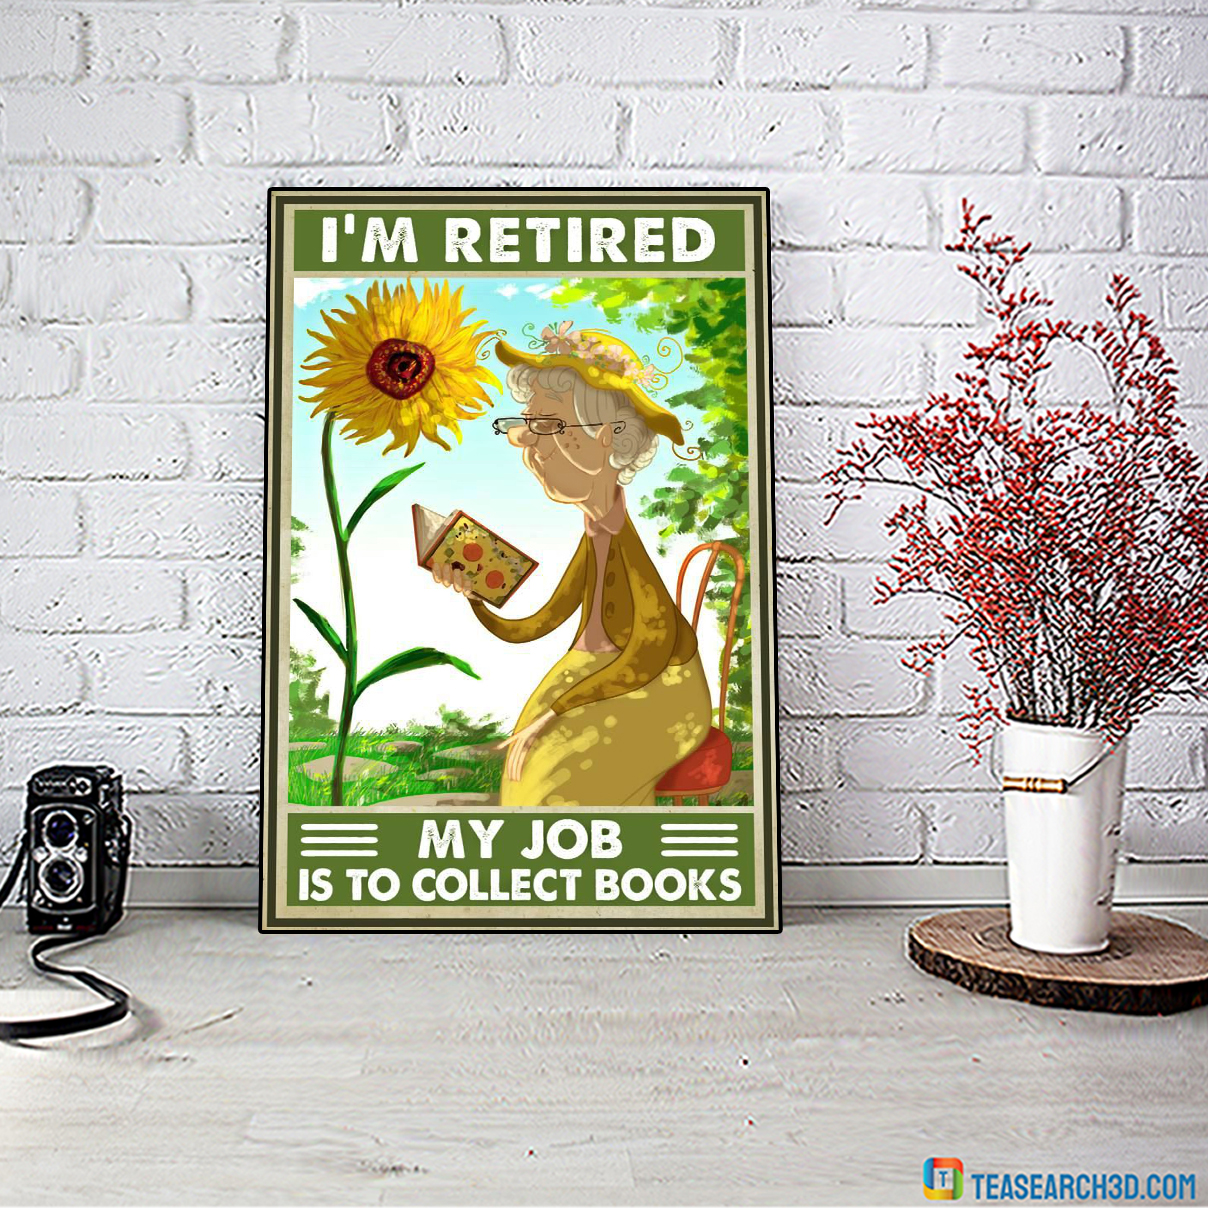 I'm retired my job is collect books poster